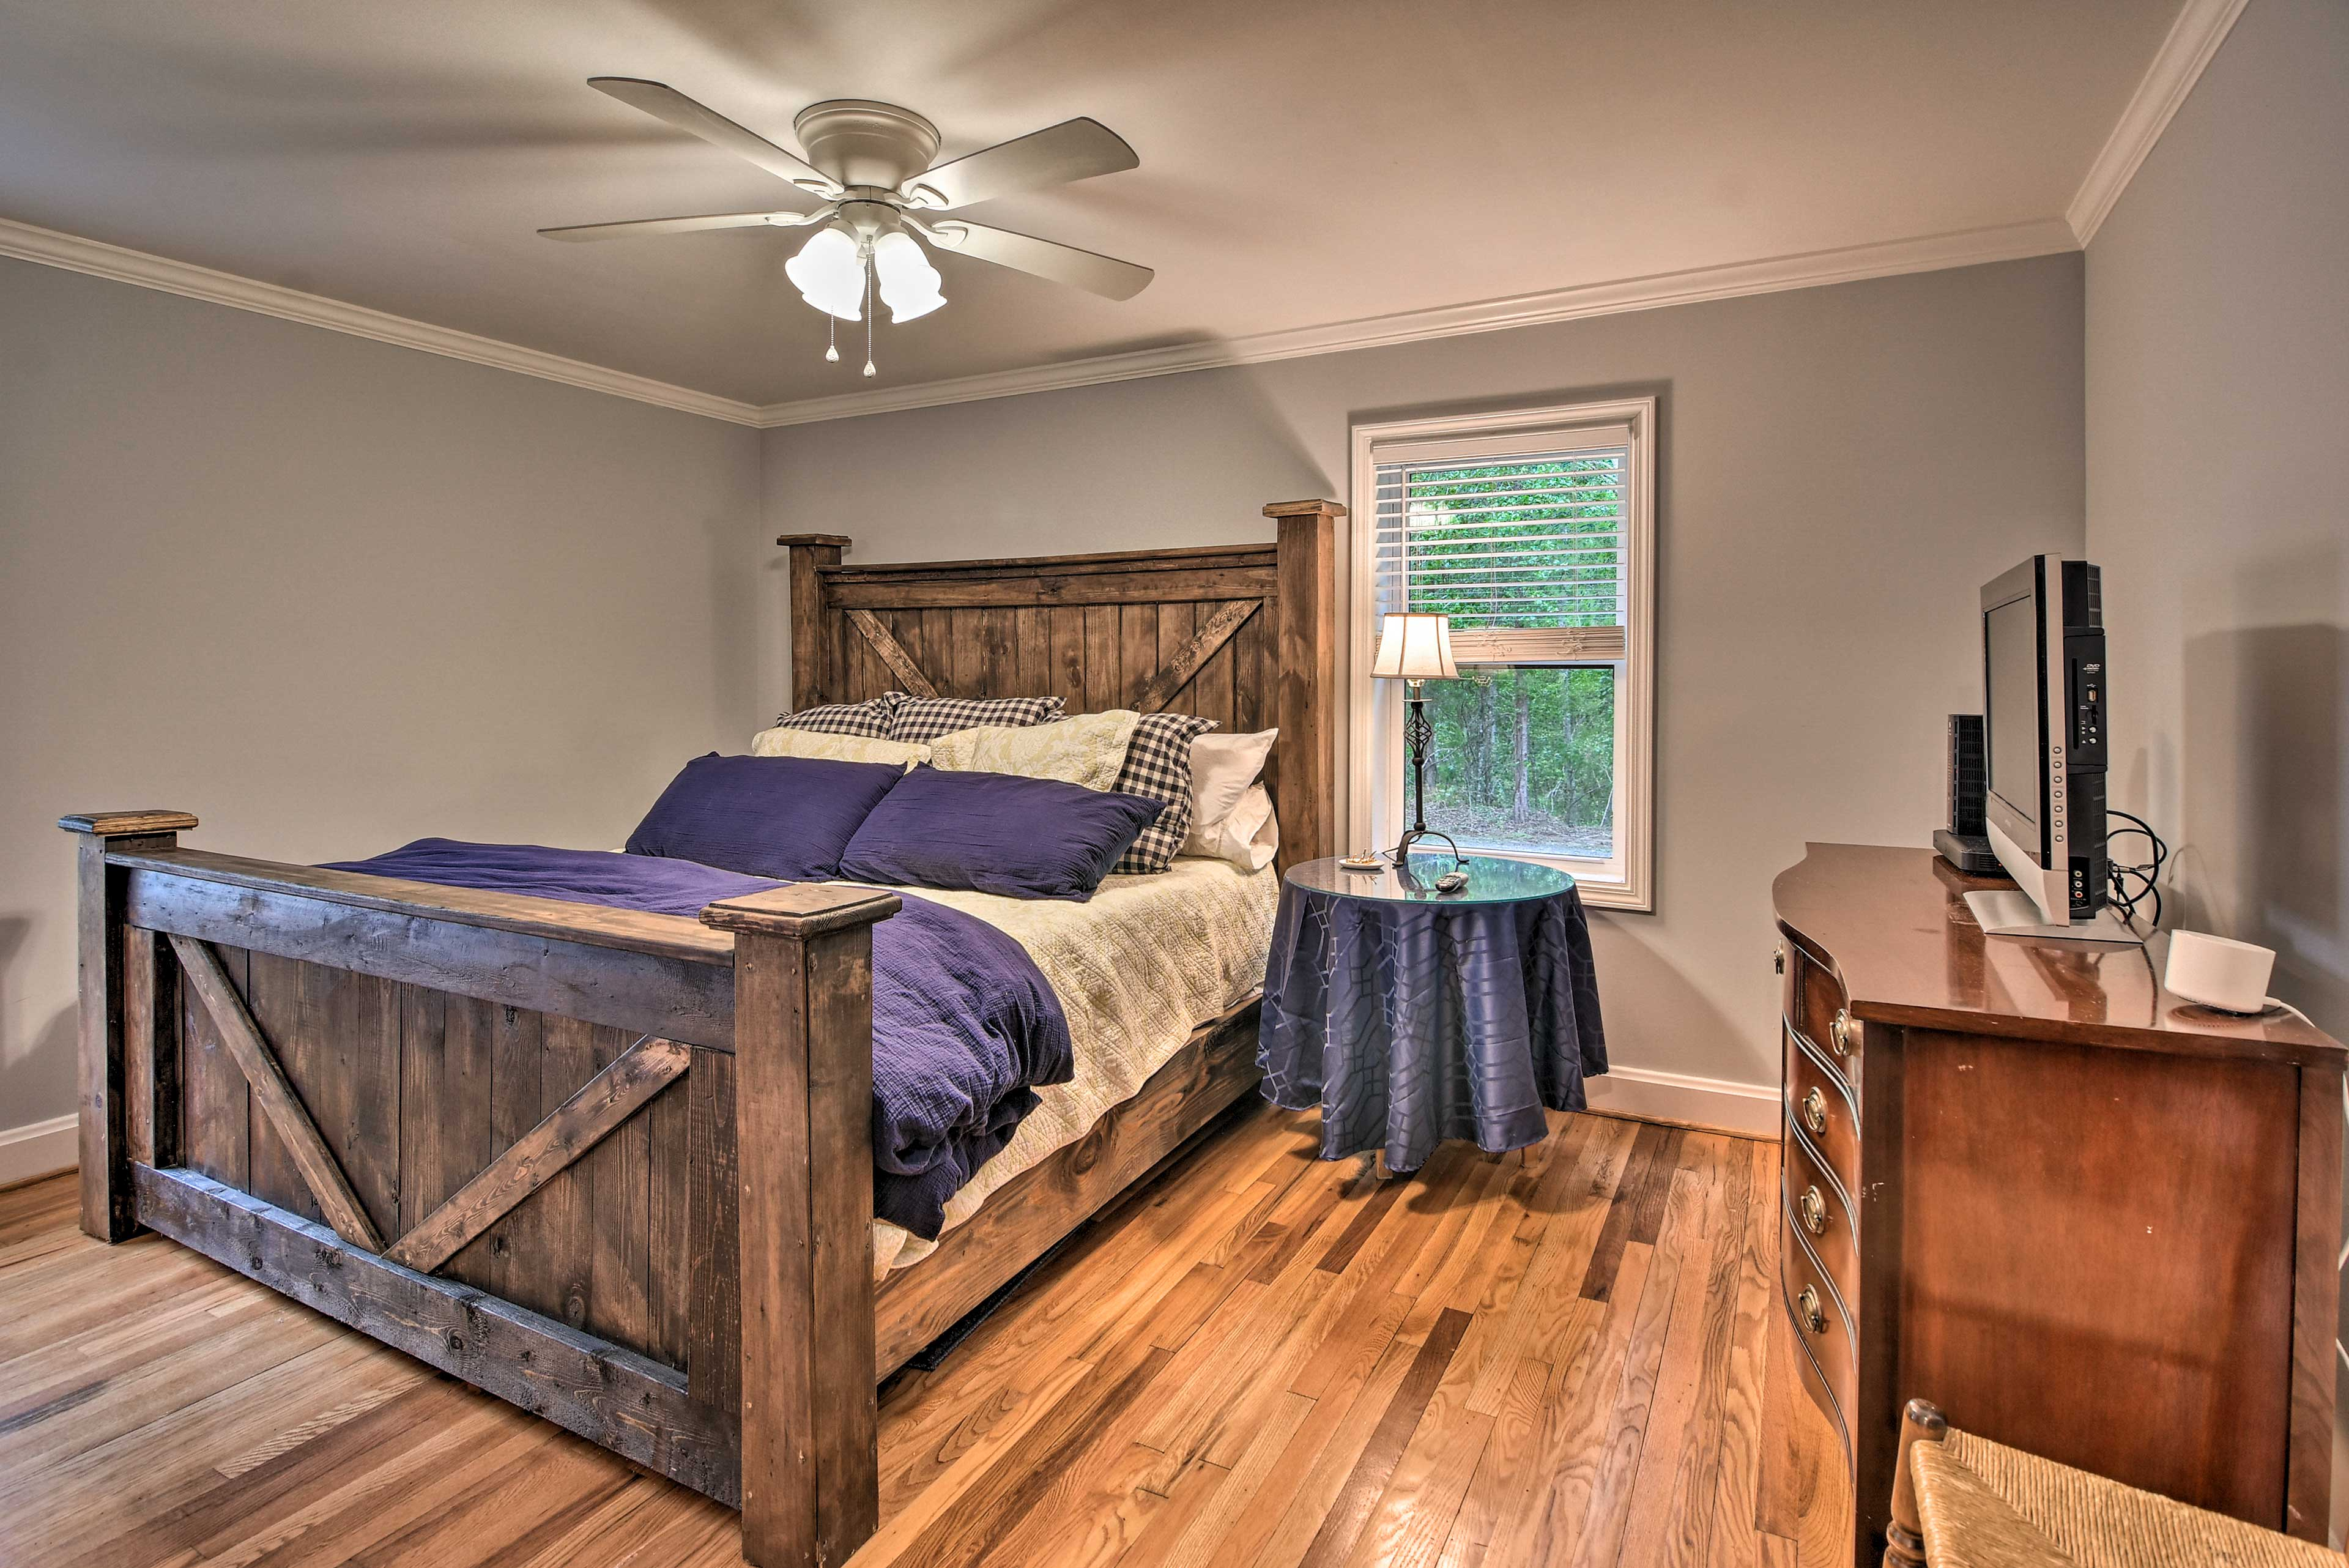 This bedroom provides space for 2 guests and a flat-screen TV.